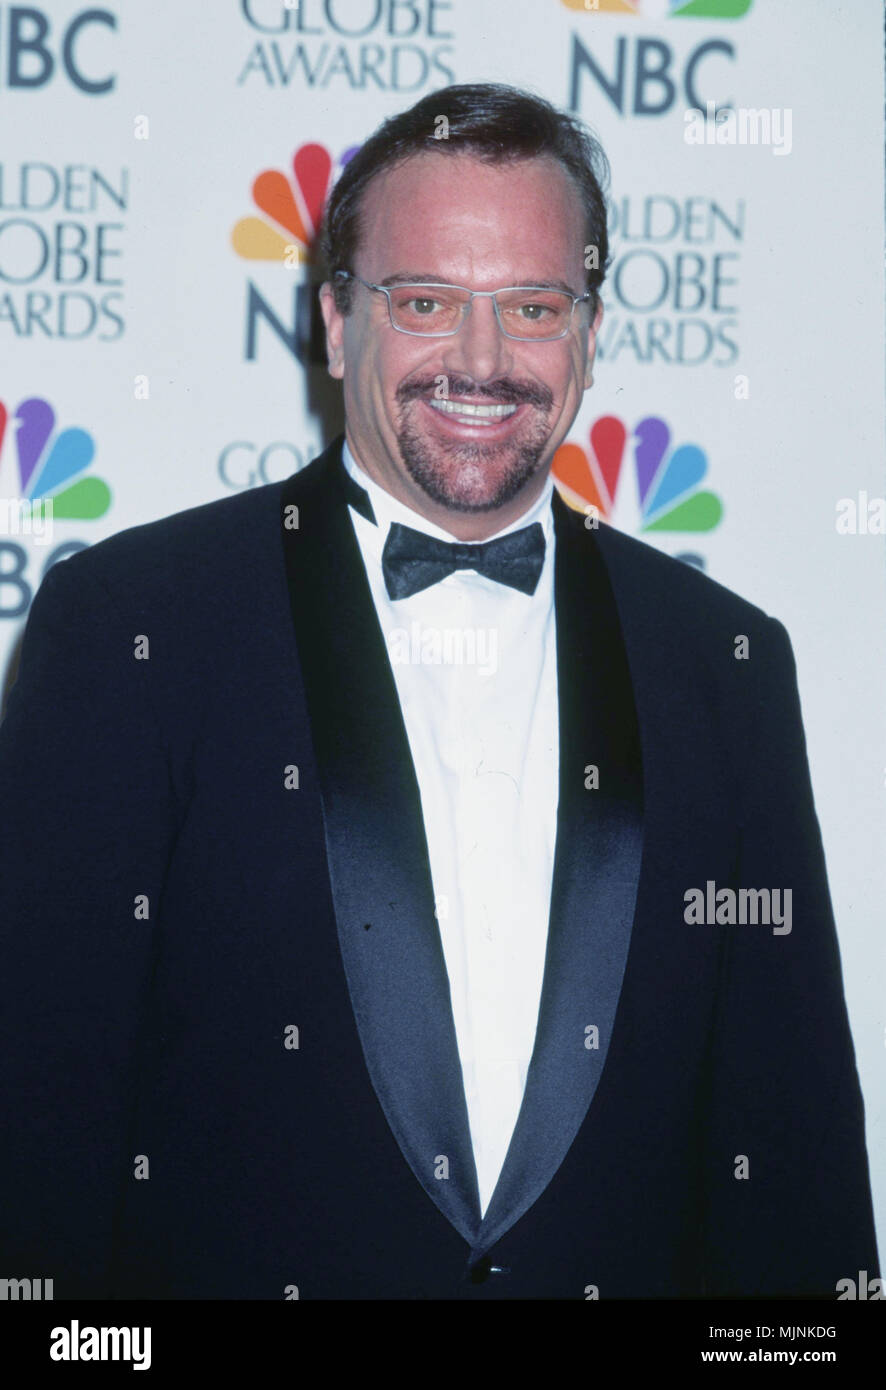 Tom Arnold --- ' Tsuni / - 'Tom Arnold  Tom Arnold  one person, Vertical, Best of, Hollywood Life, Event in Hollywood Life - California,  Red Carpet Event, Vertical, USA, Film Industry, Celebrities,  Photography, Bestof, Arts Culture and Entertainment, , , Topix - Stock Image